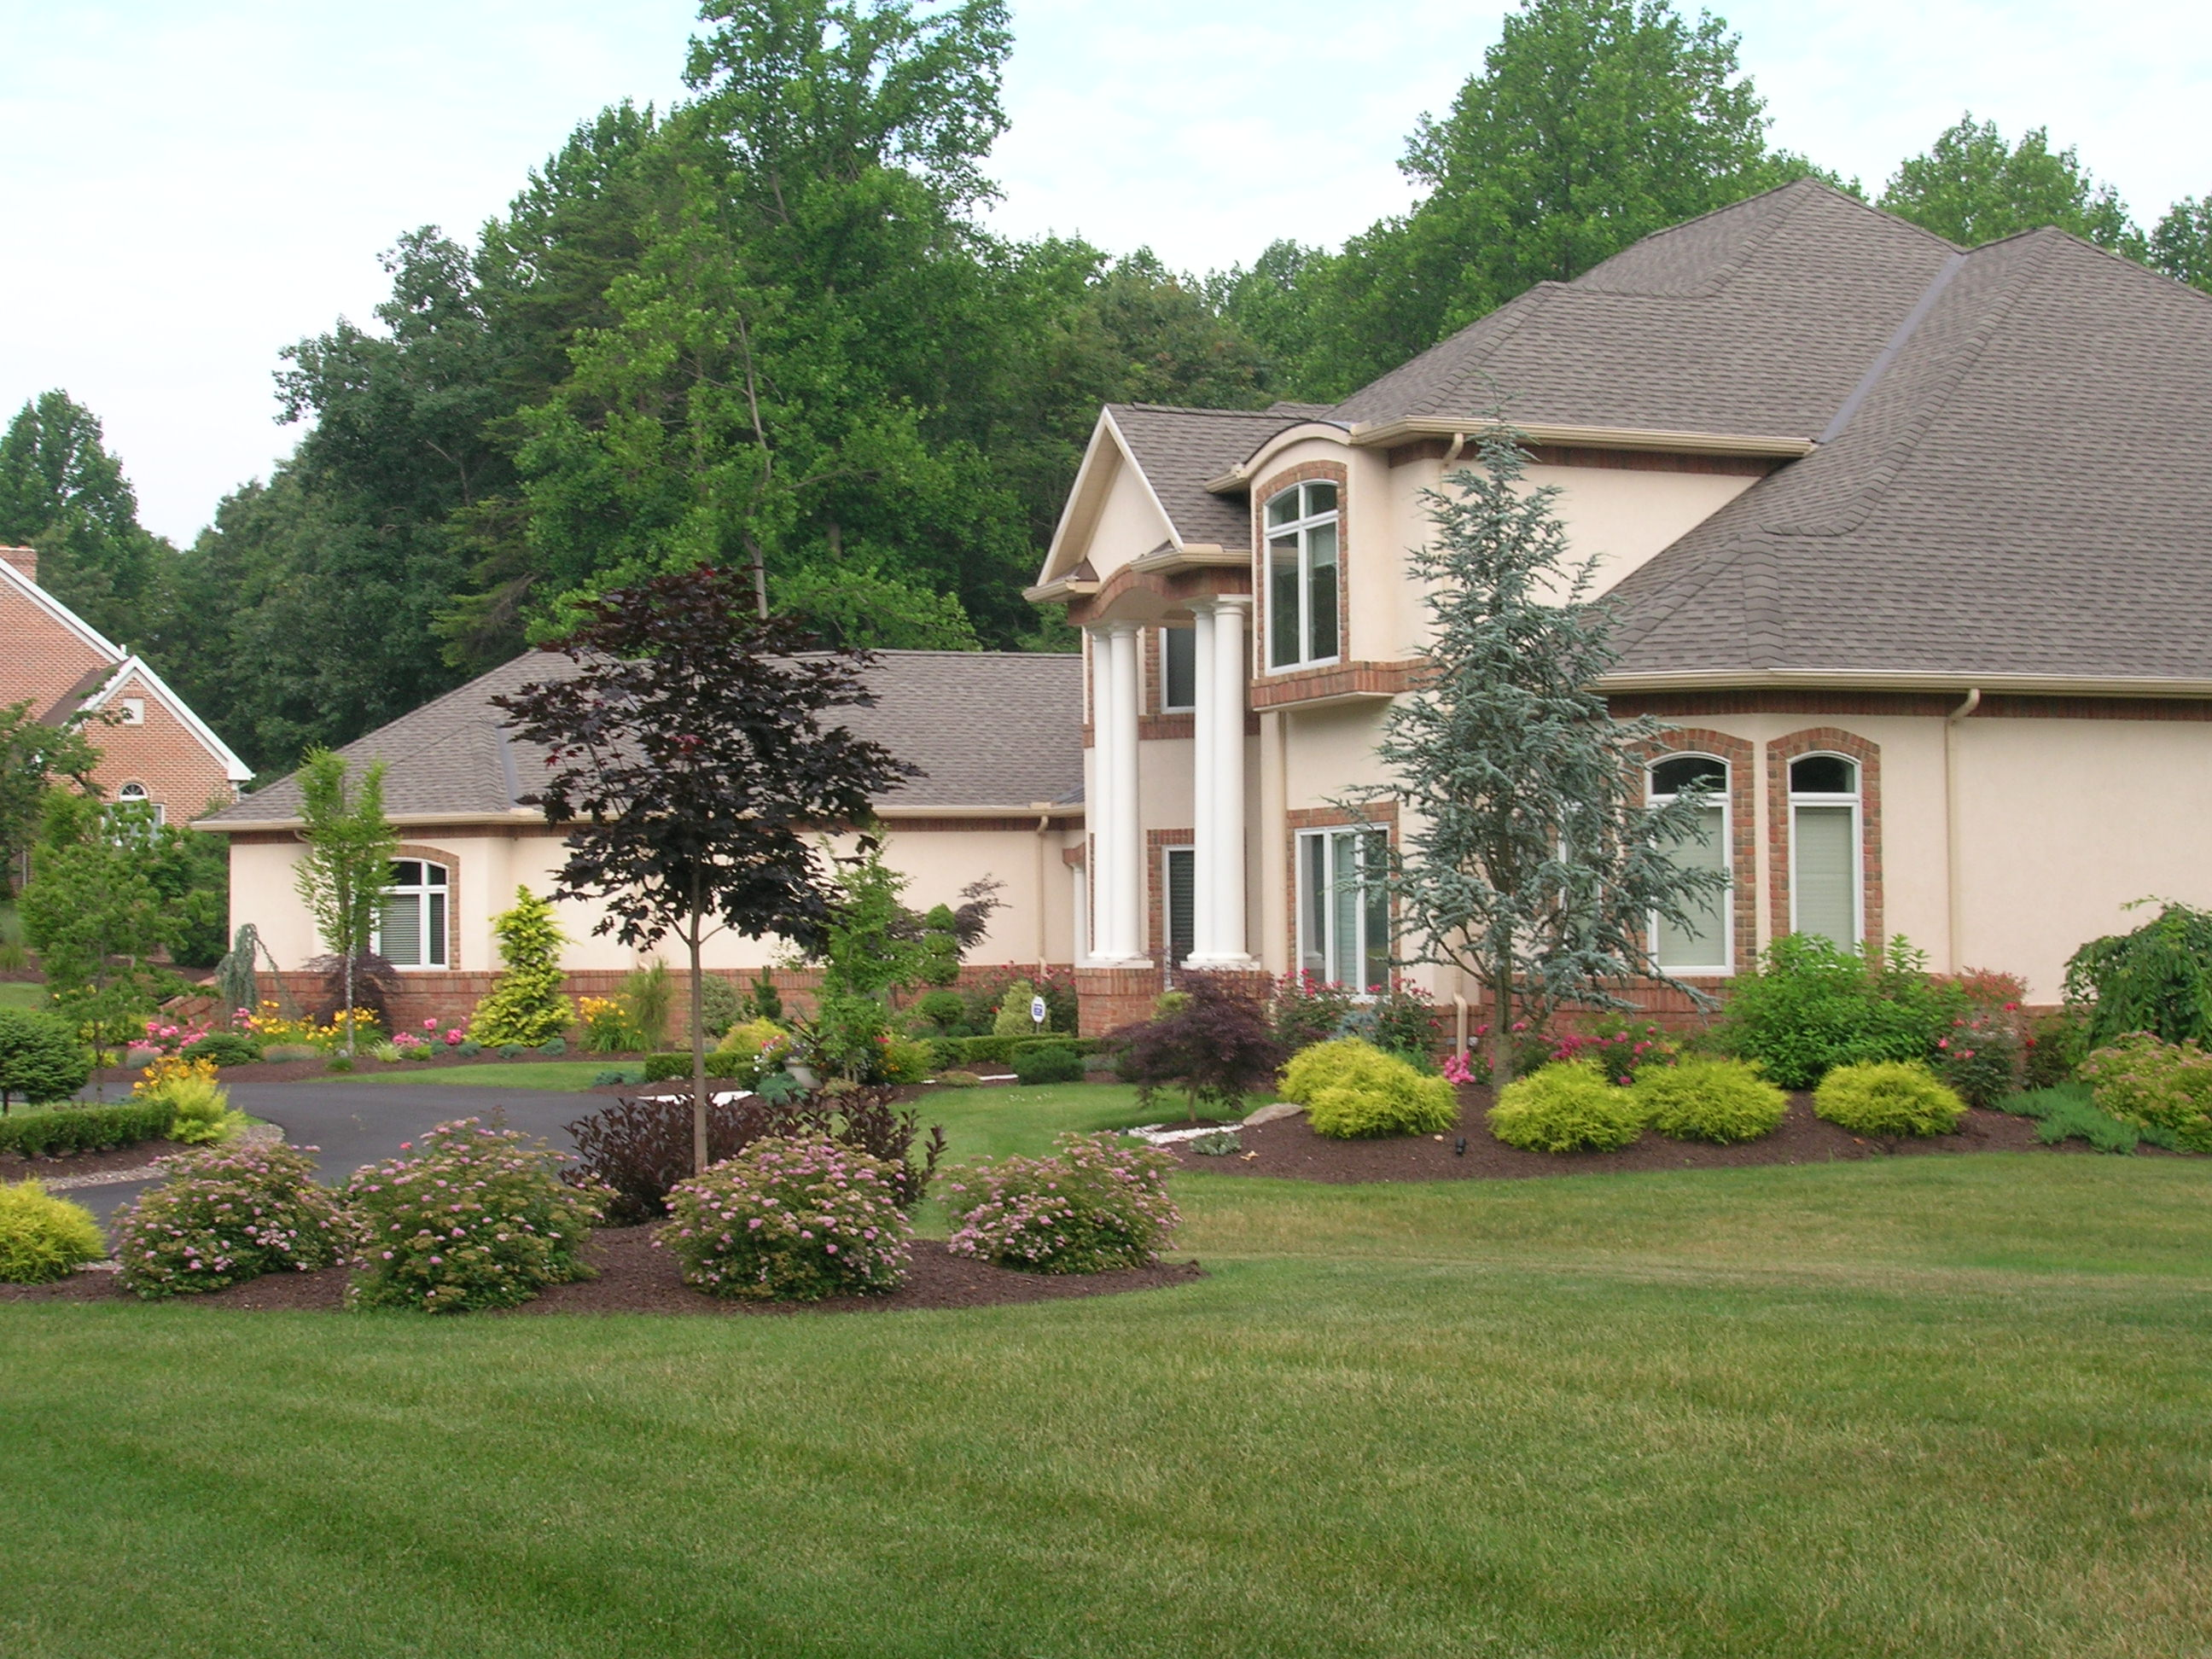 Residential house landscaping : Lavish landscaping